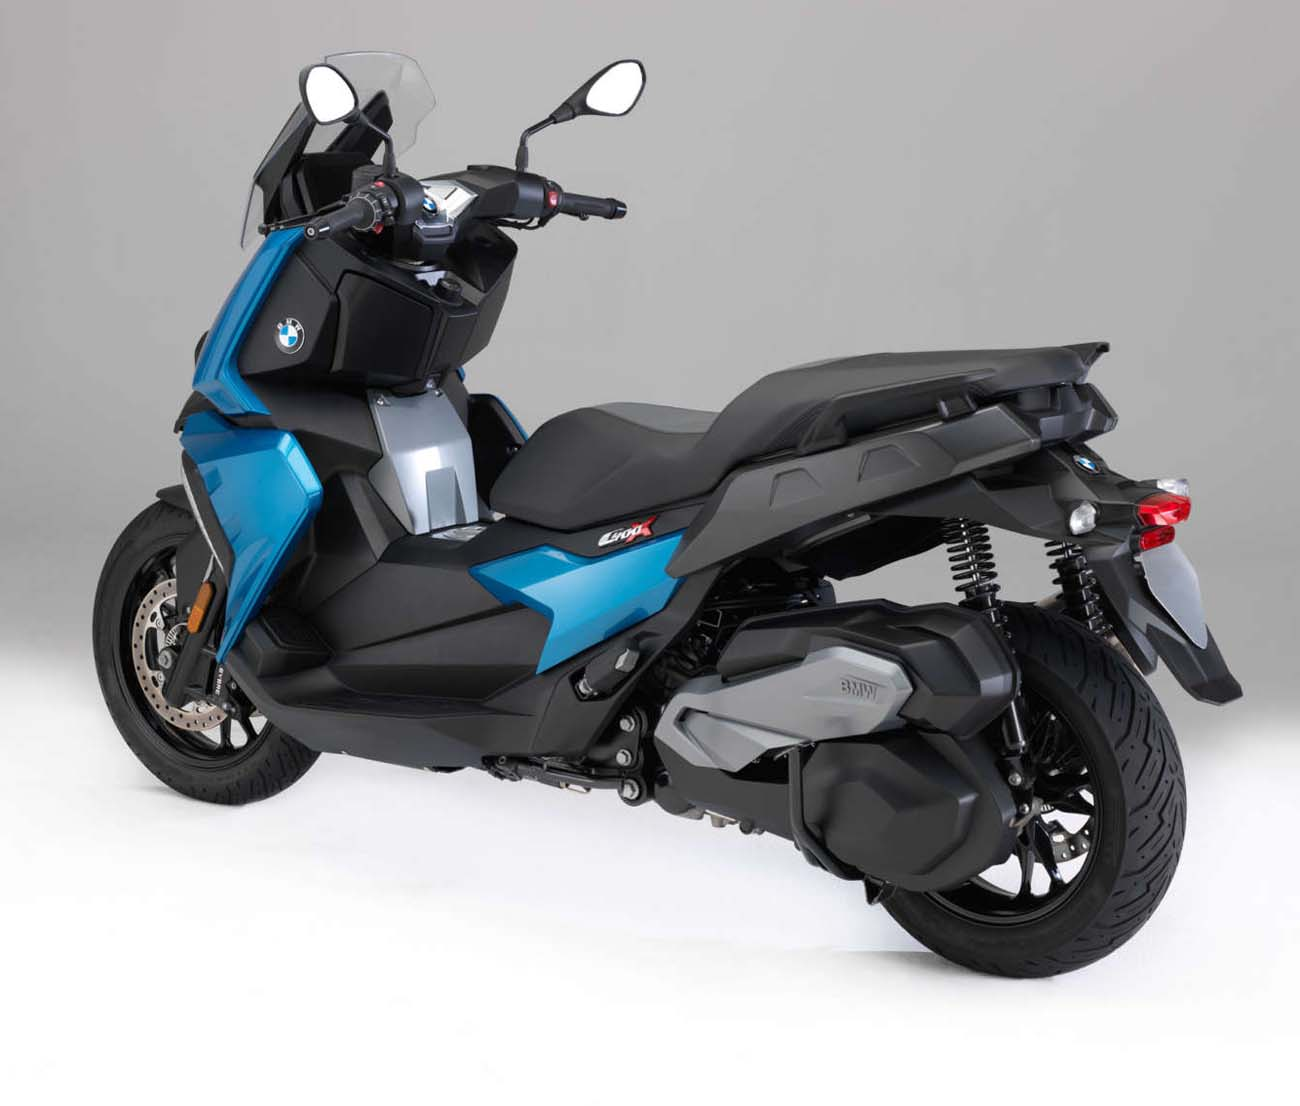 BMW C 400X technical specifications